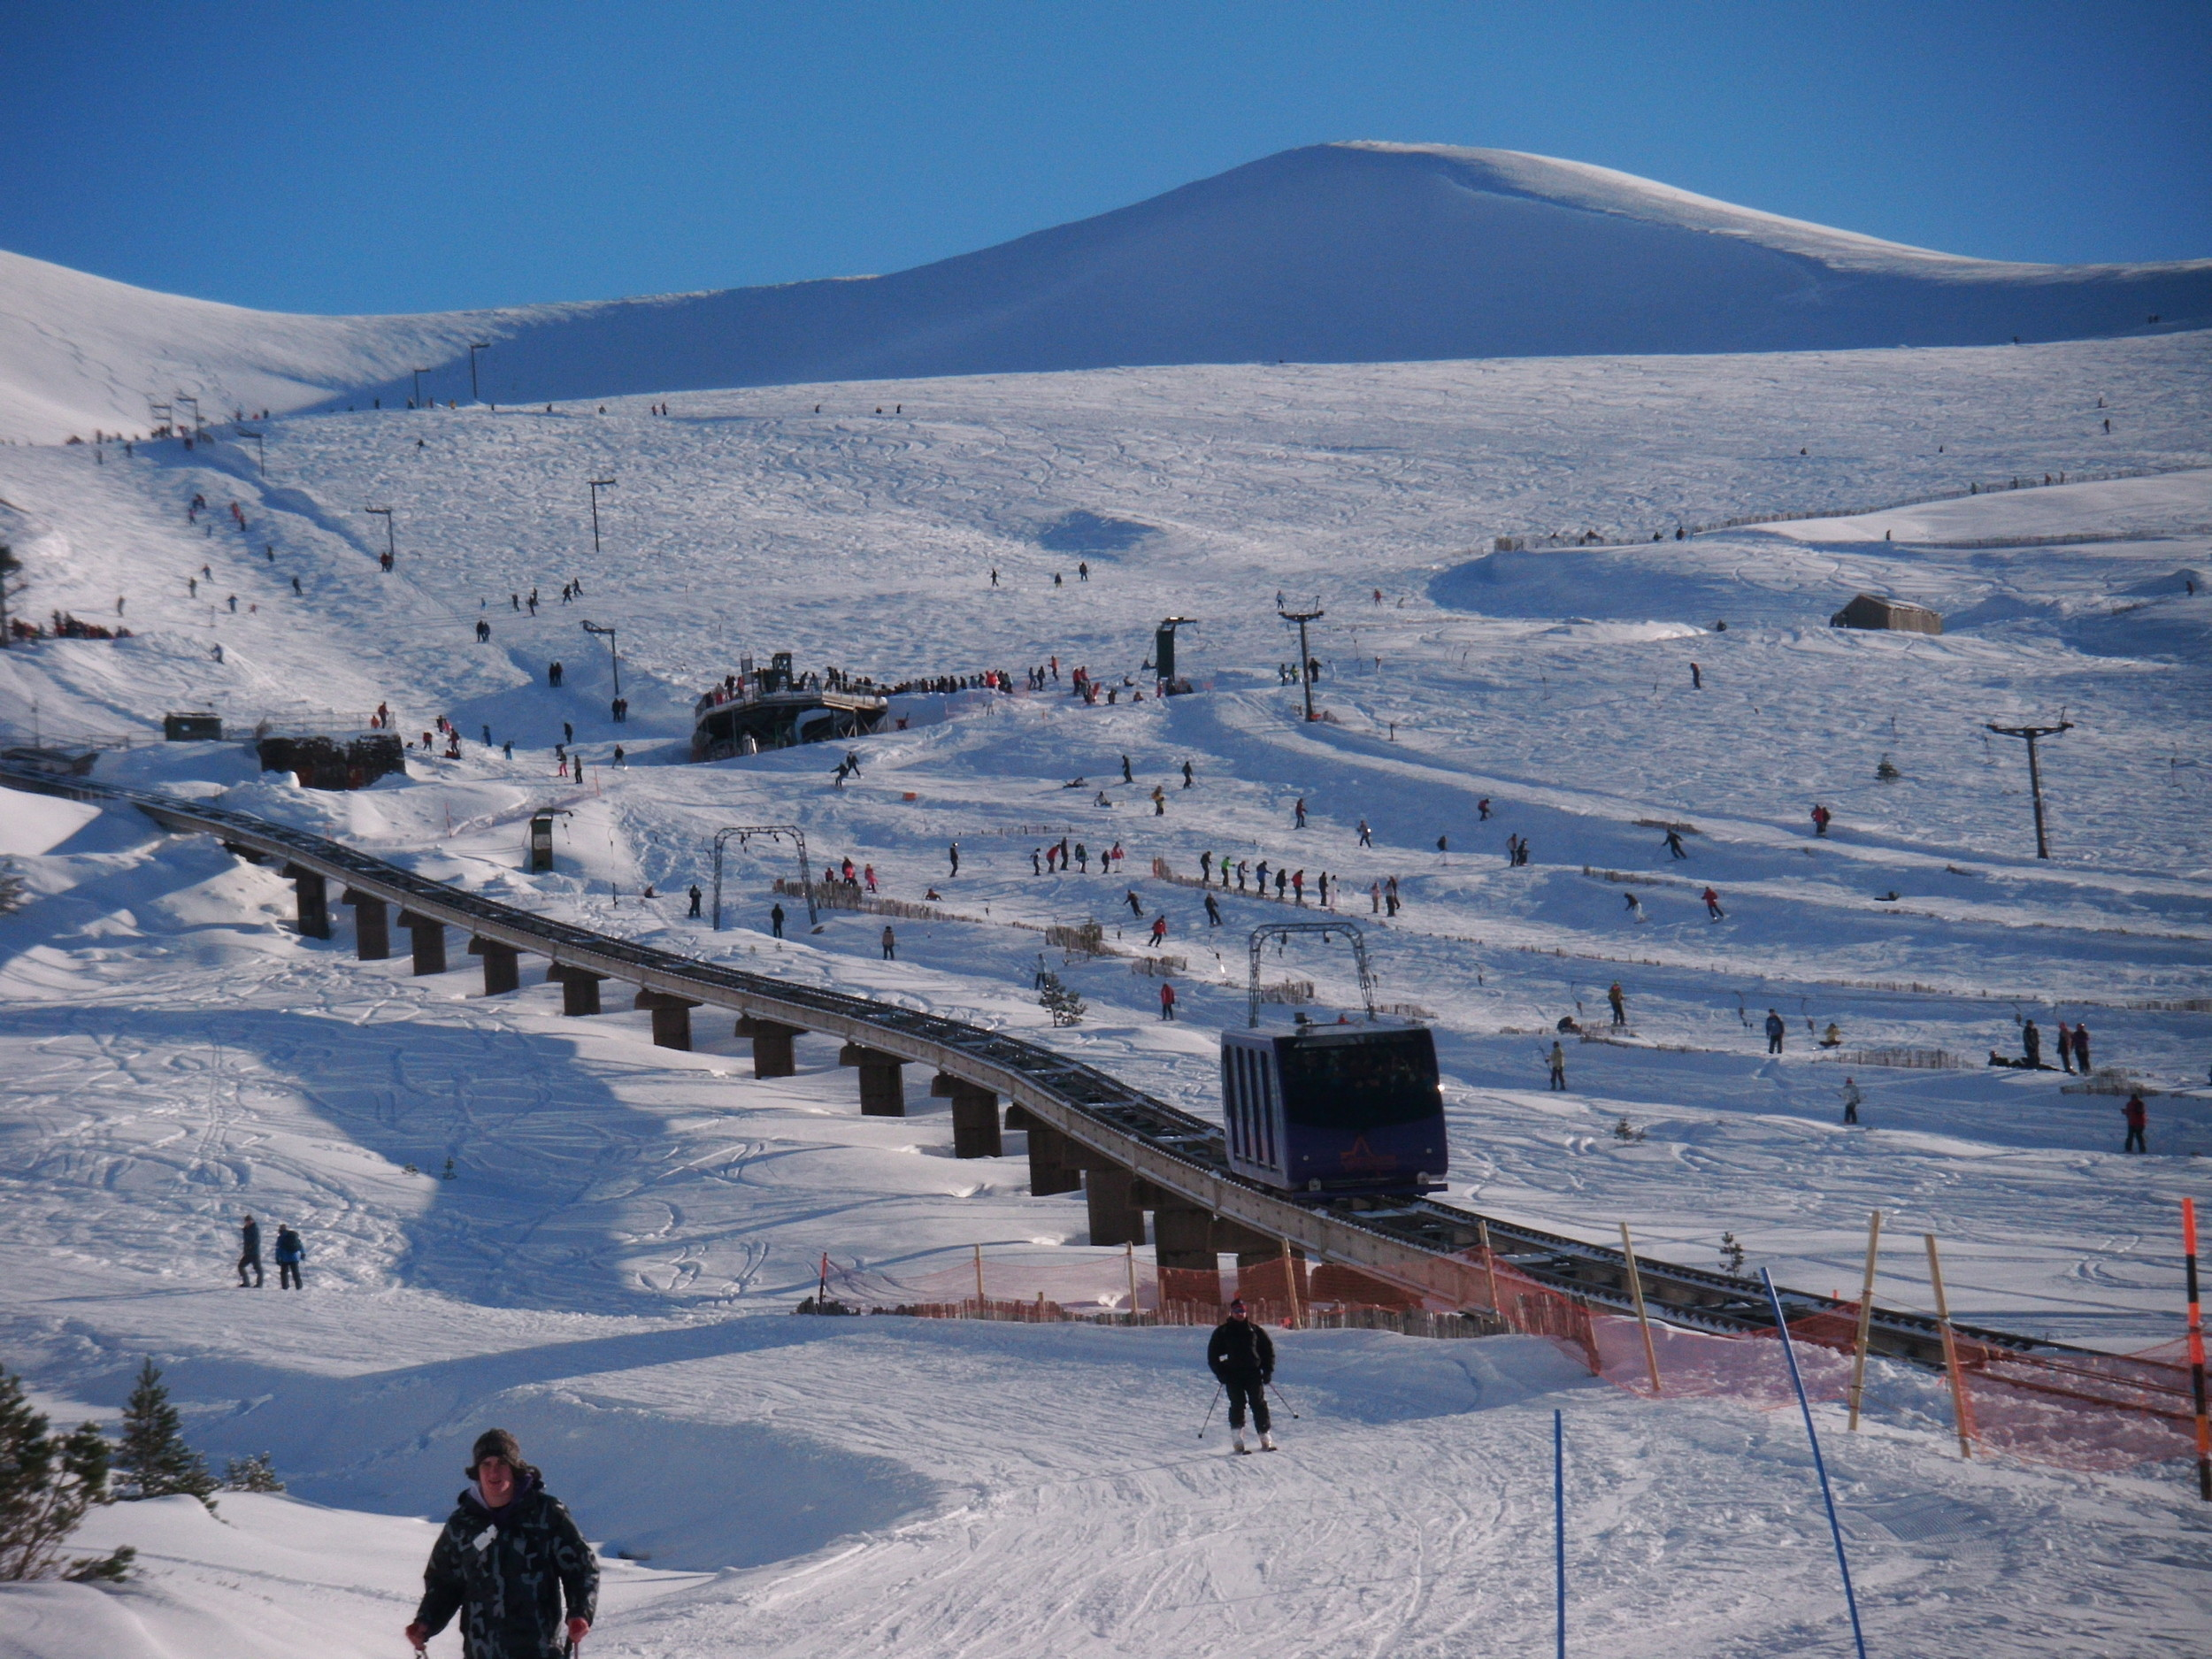 Tania train at Cairngorm Mountain, Scotlandundefined